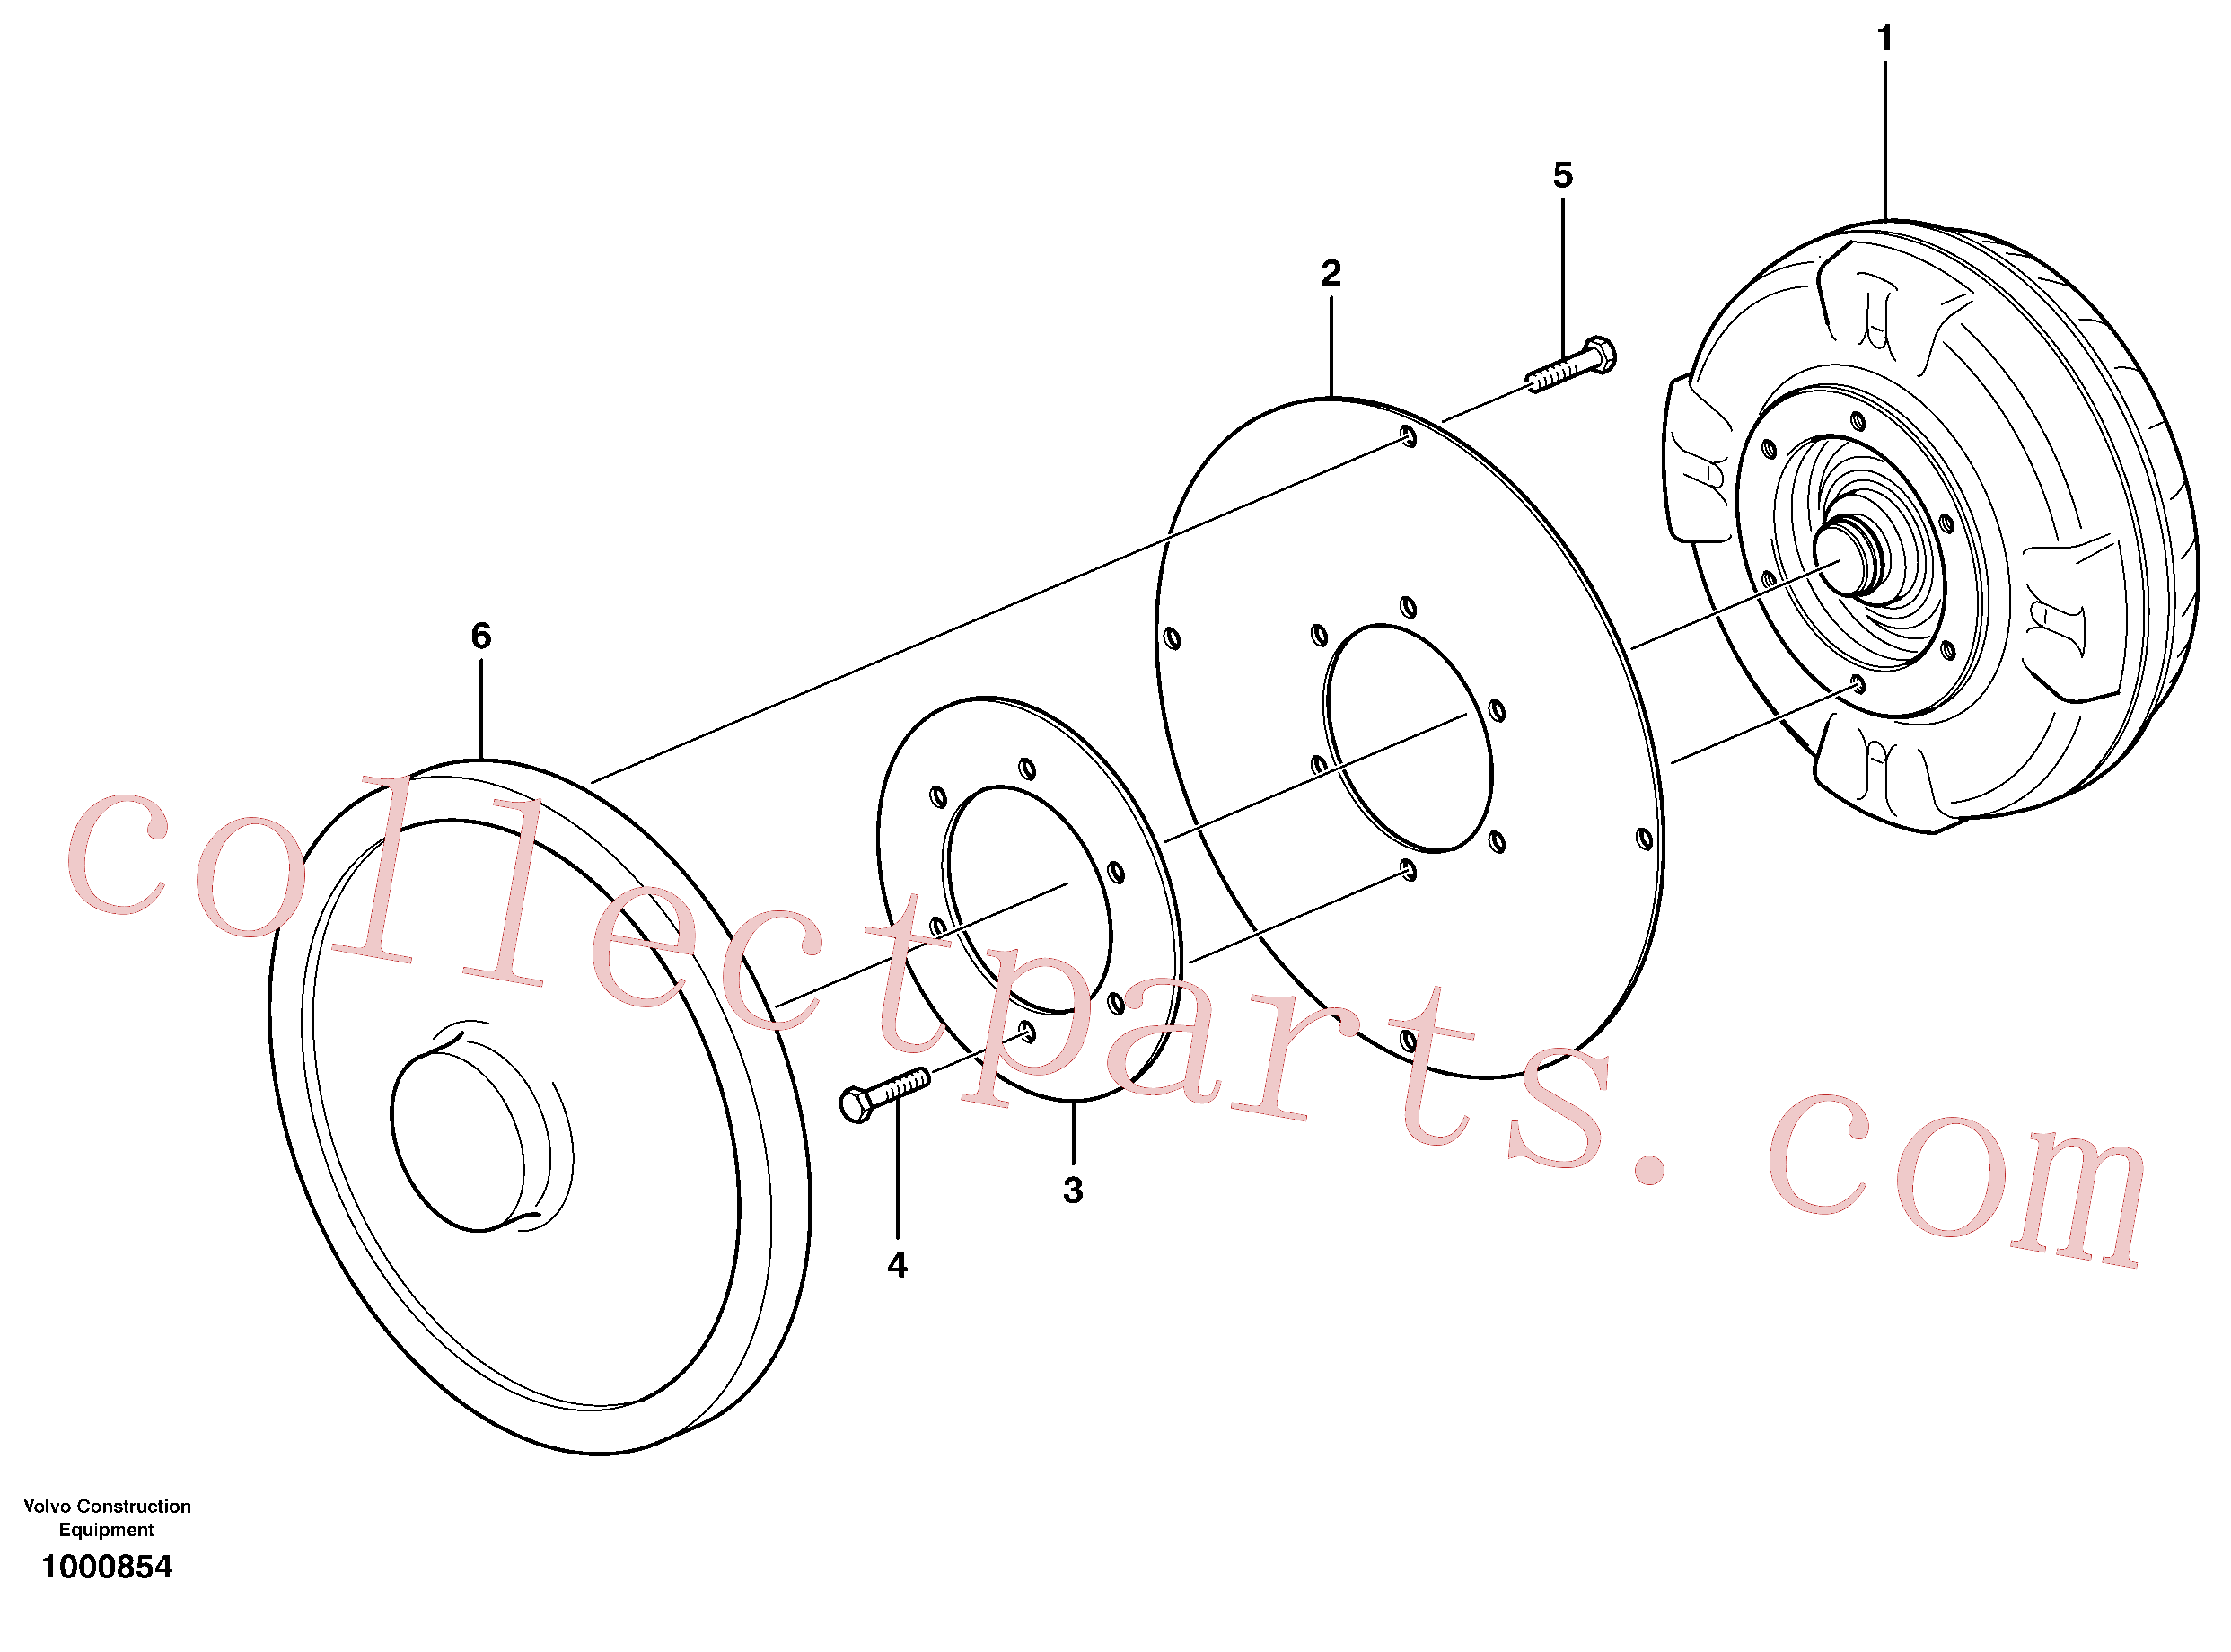 VOE13970876 for Volvo Torque converter with fitting parts(1000854 assembly)